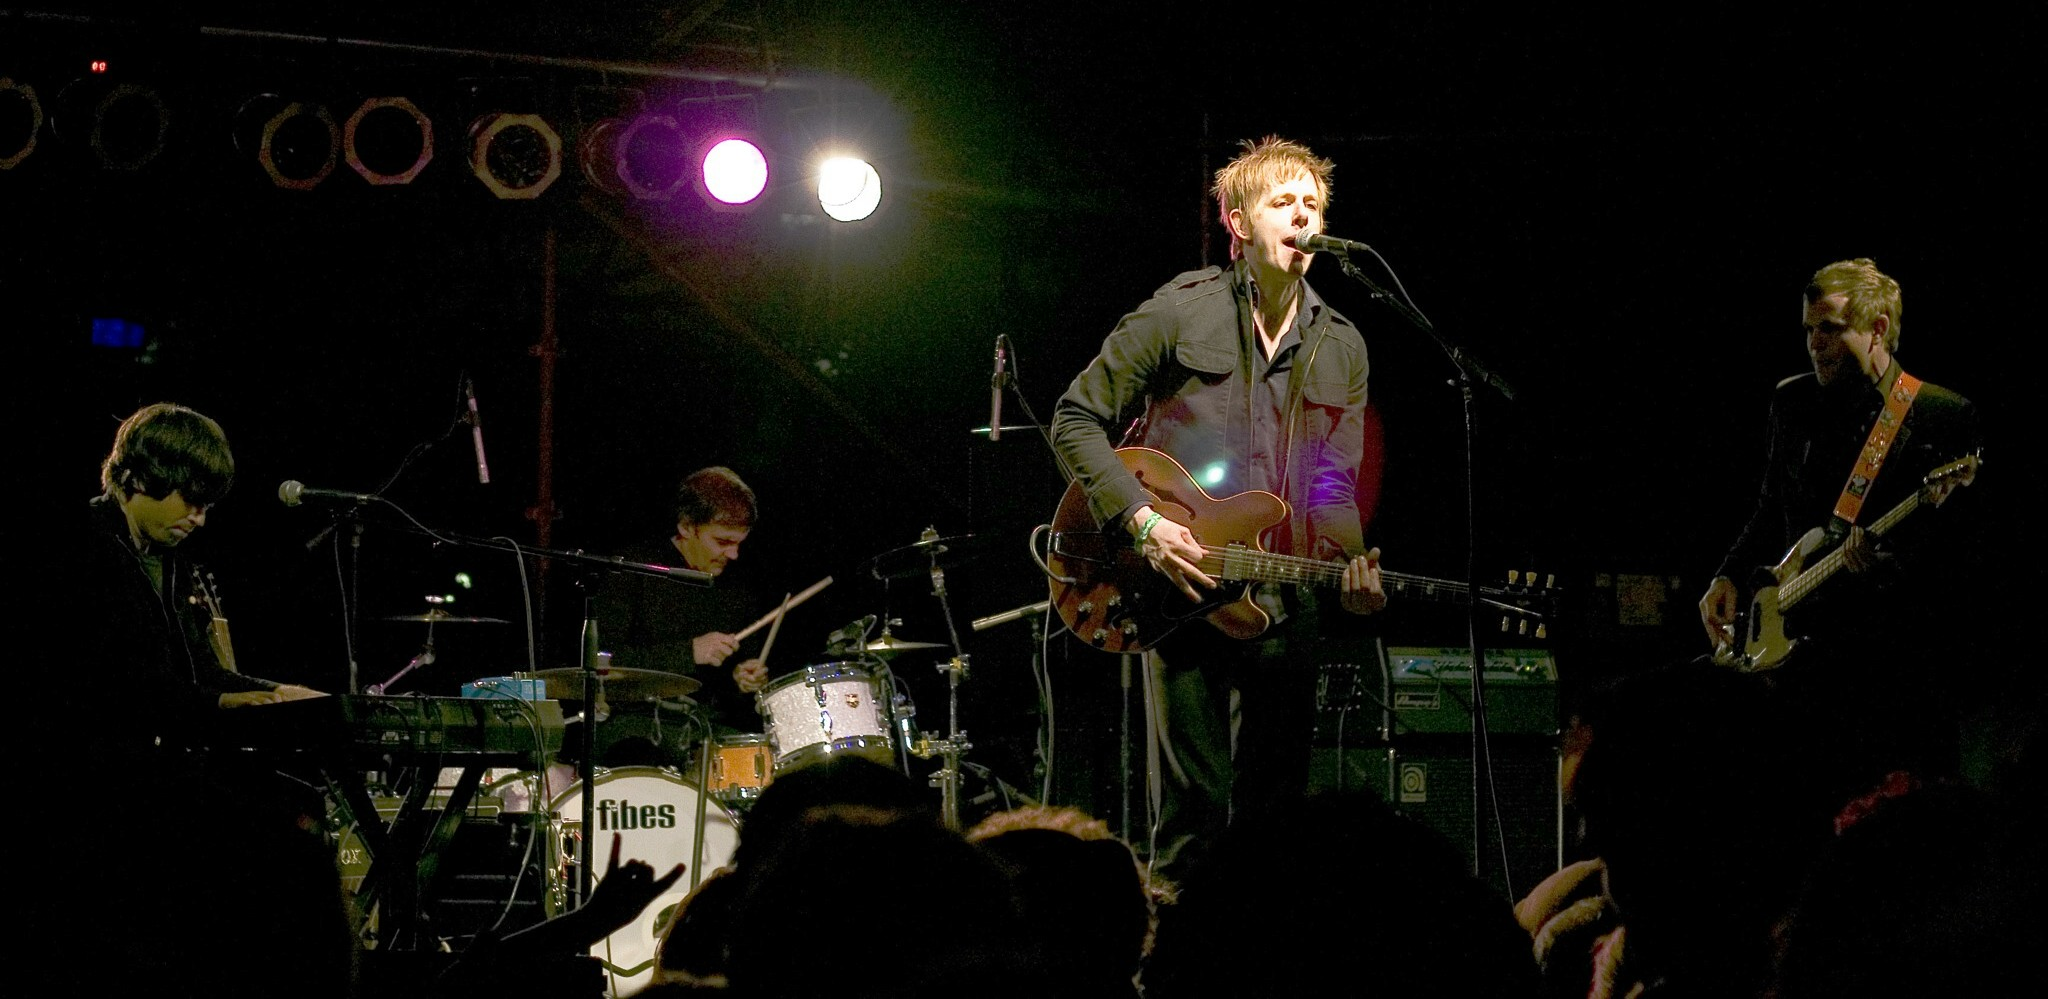 Spoon covers Wire at the Teragram in L.A. (May 31, 2015)